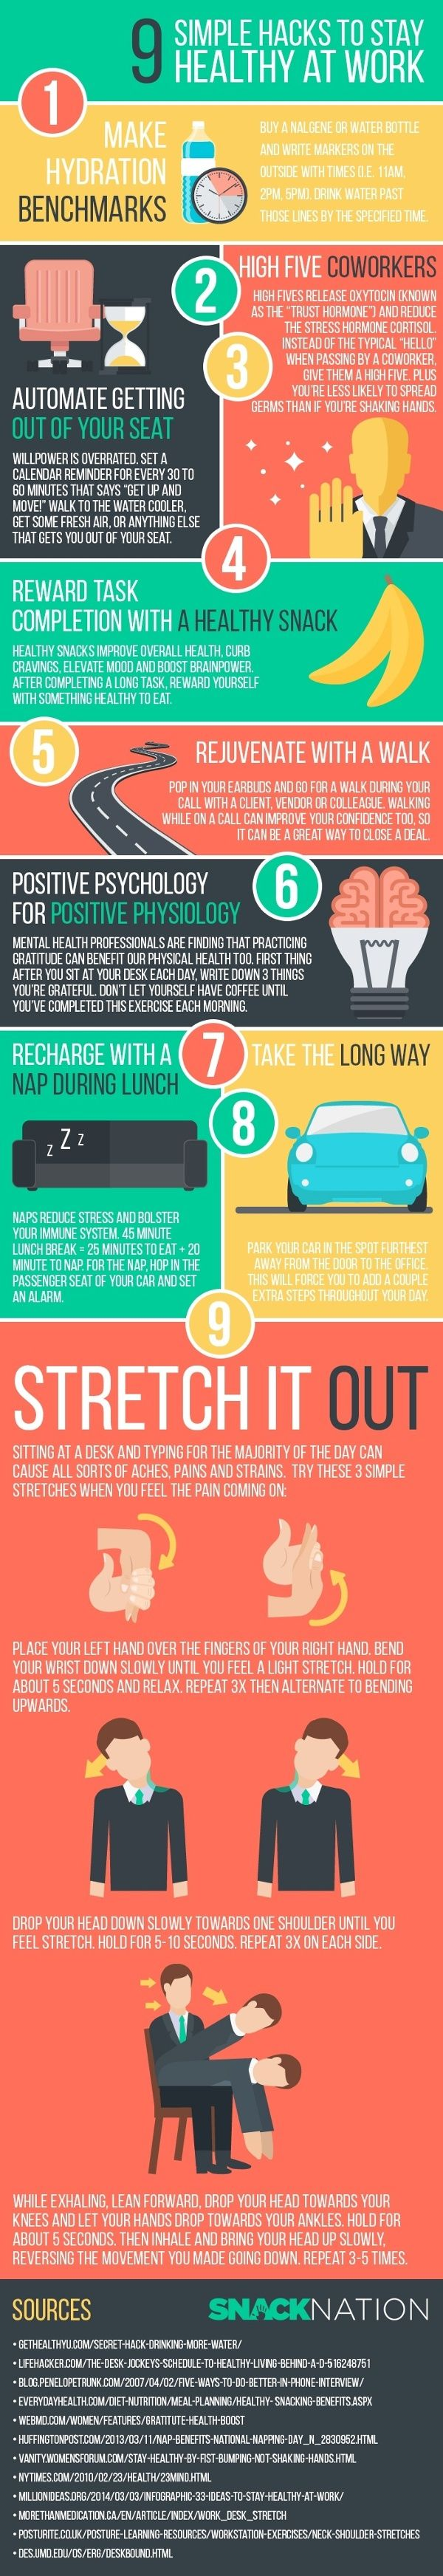 Top tips to staying stress free in the workplace infographic - Many Of Us Have To Spend 8 Or More Hours At Work On A Weekly Basis You Wouldn T Want Your Work To Affect Your Health Though This Infographic From